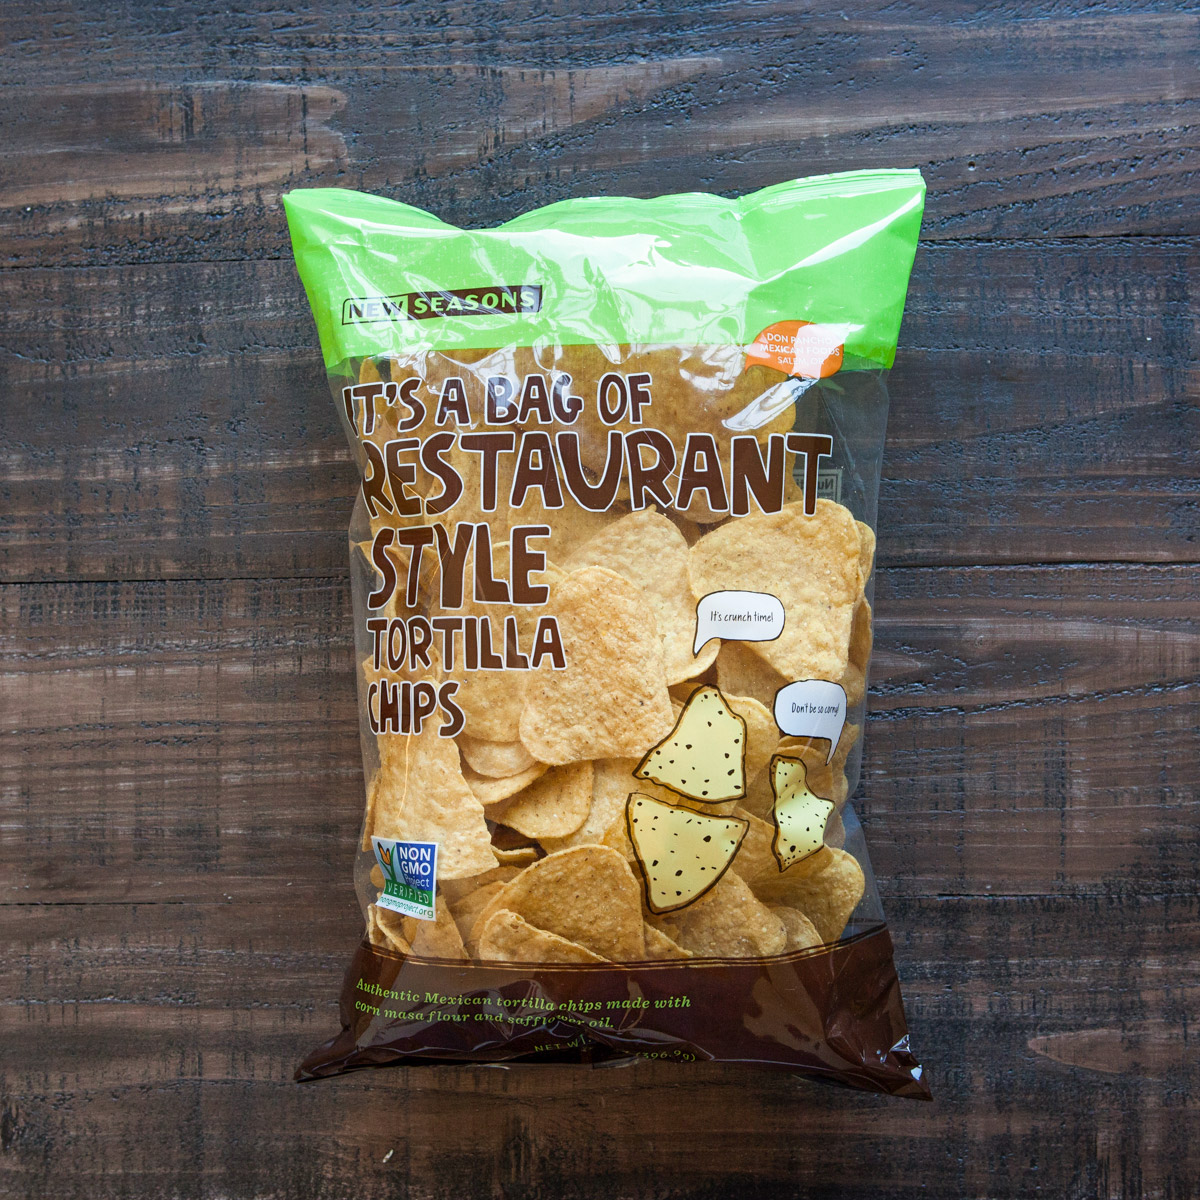 Bag of tortilla chips